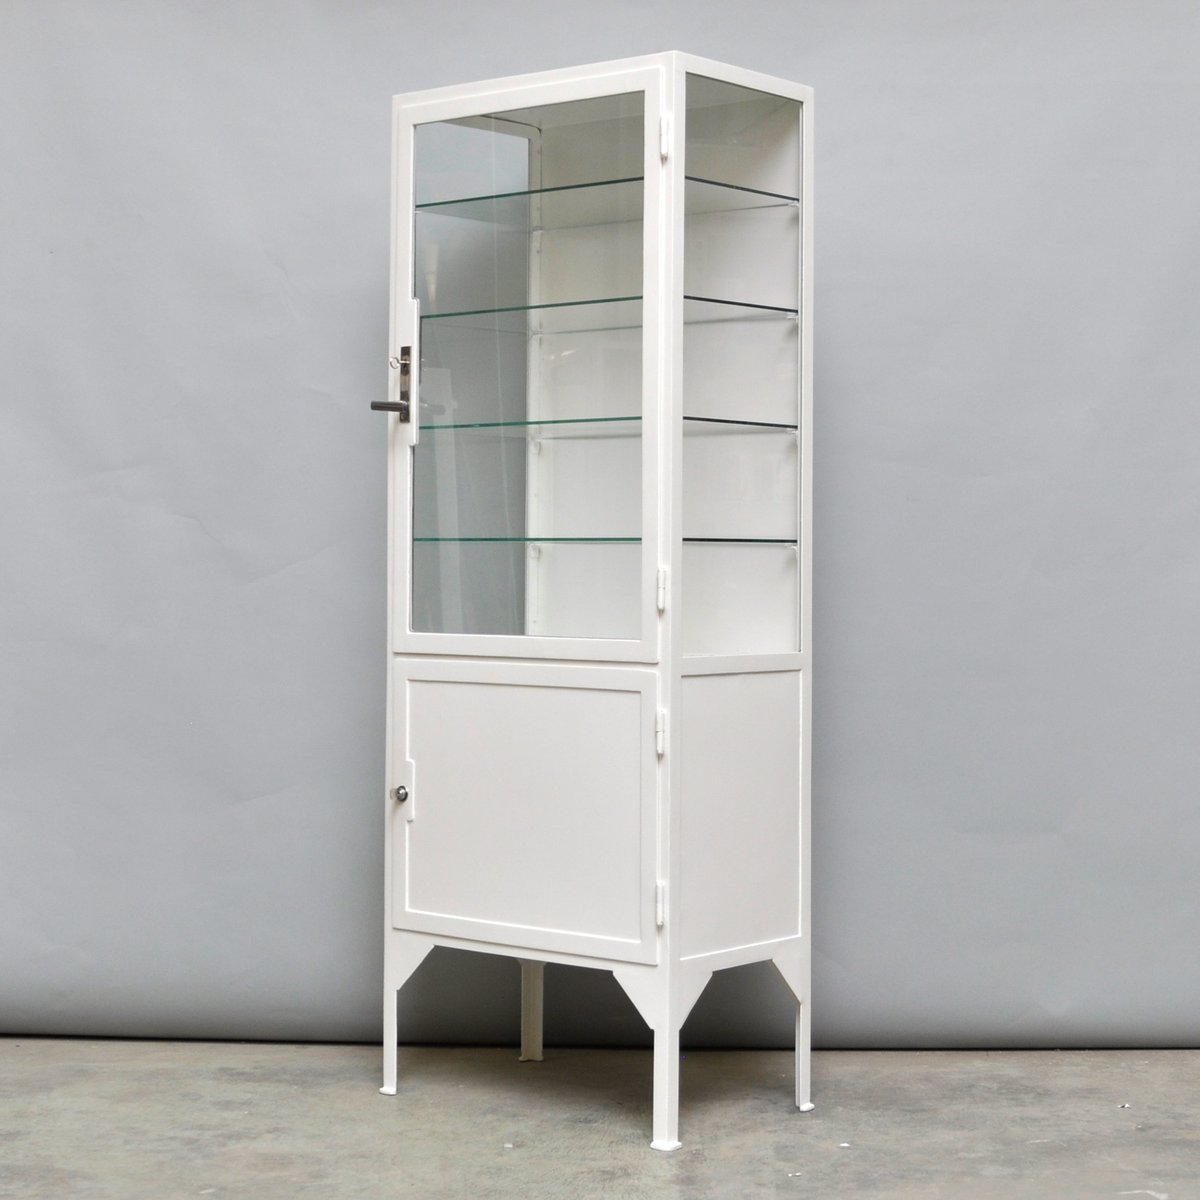 Steel & Glass Medicine Cabinet, 1940s for sale at Pamono